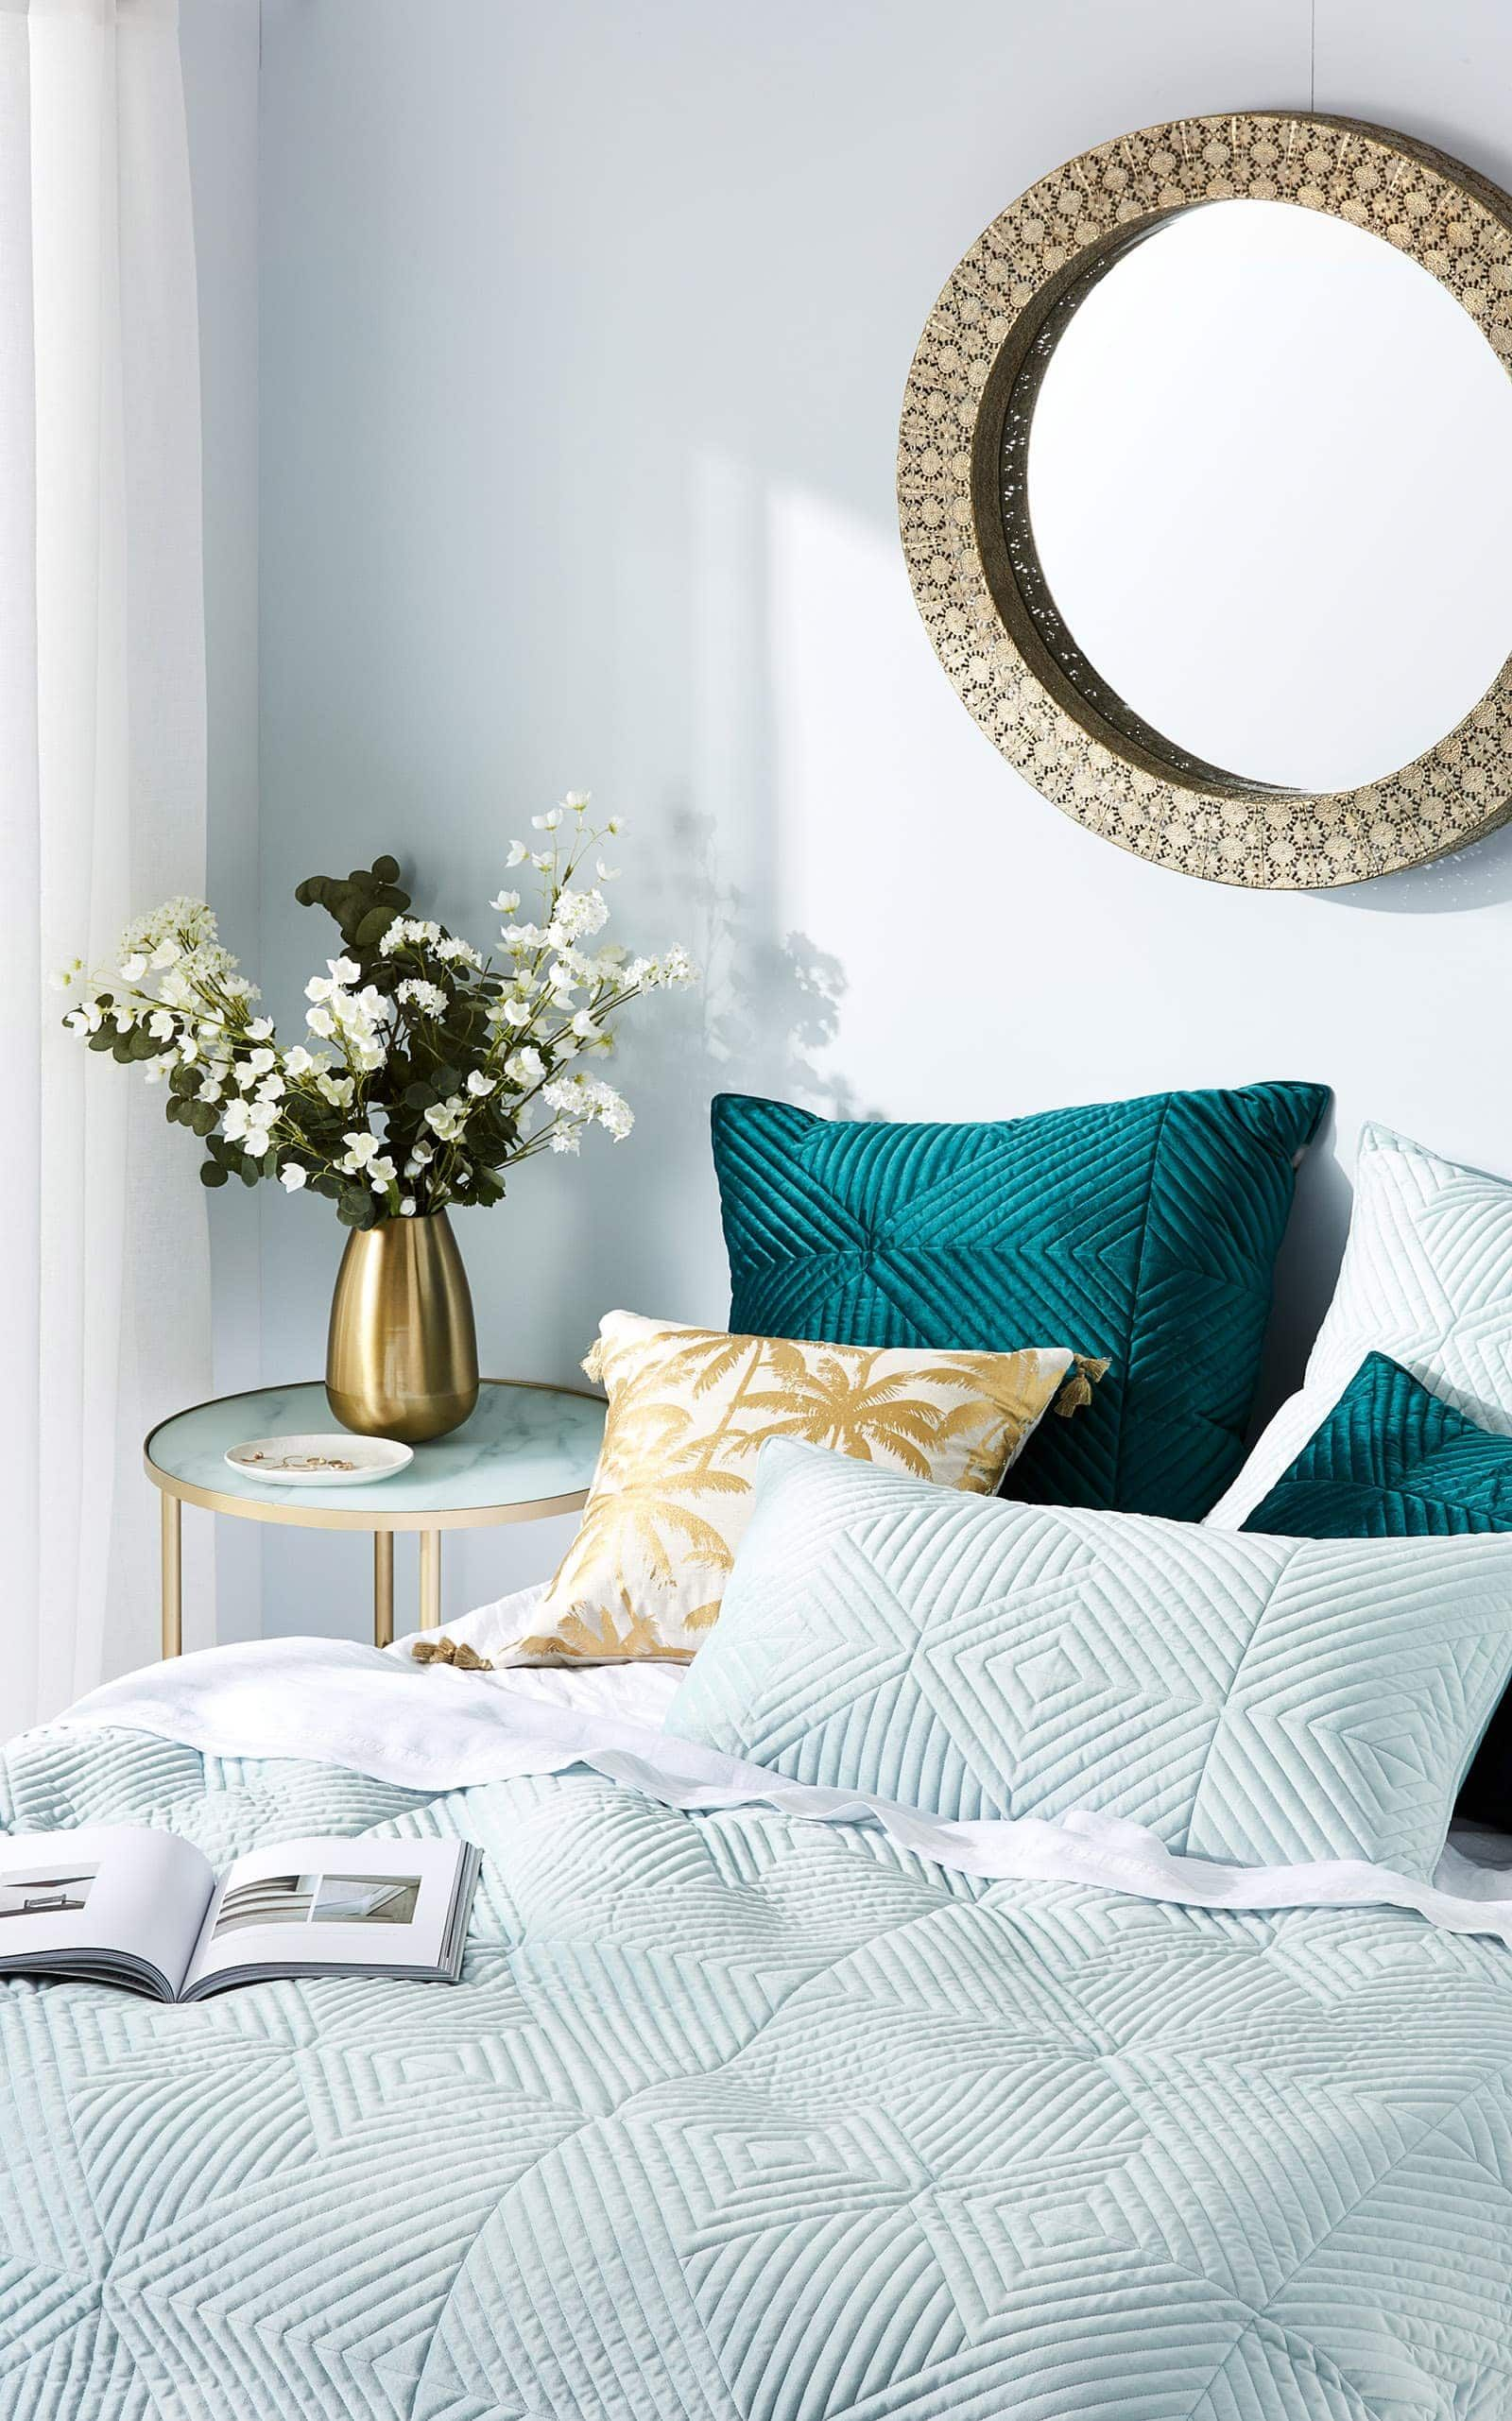 50 circle mirrors bedroom ideas with images  round